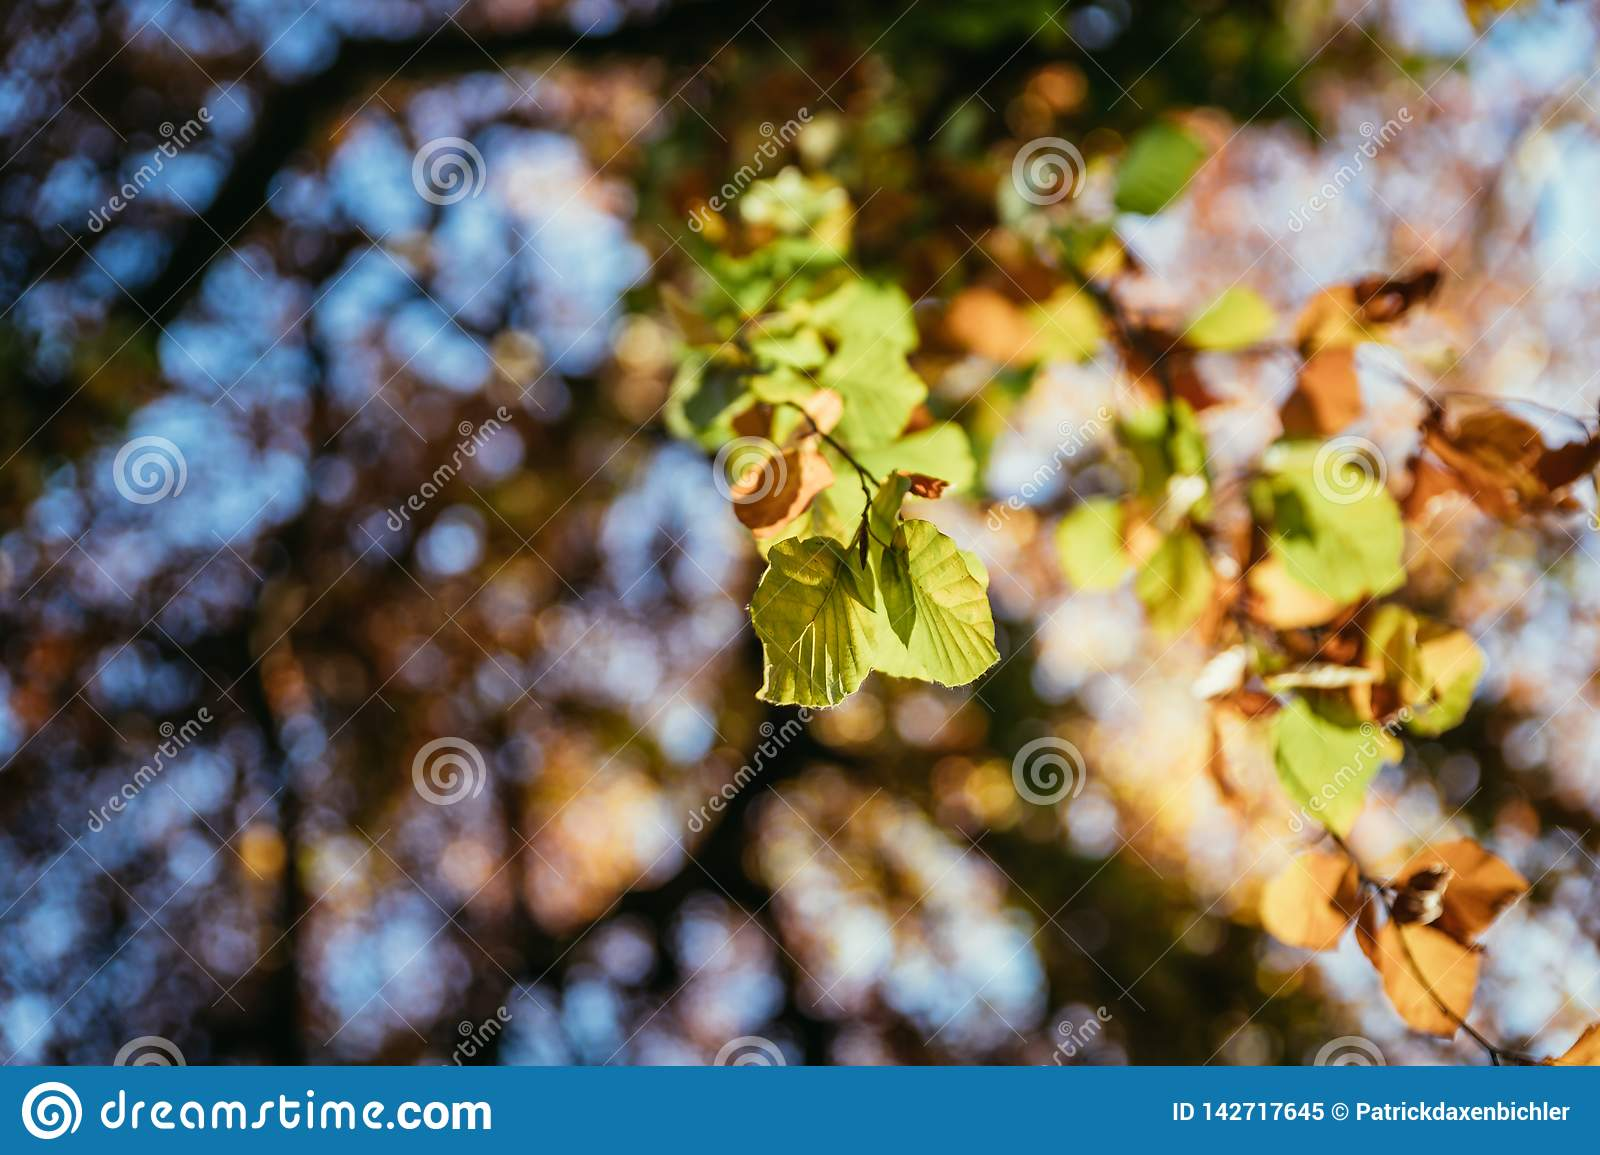 Colourful leaves in a park, autumn, copy space